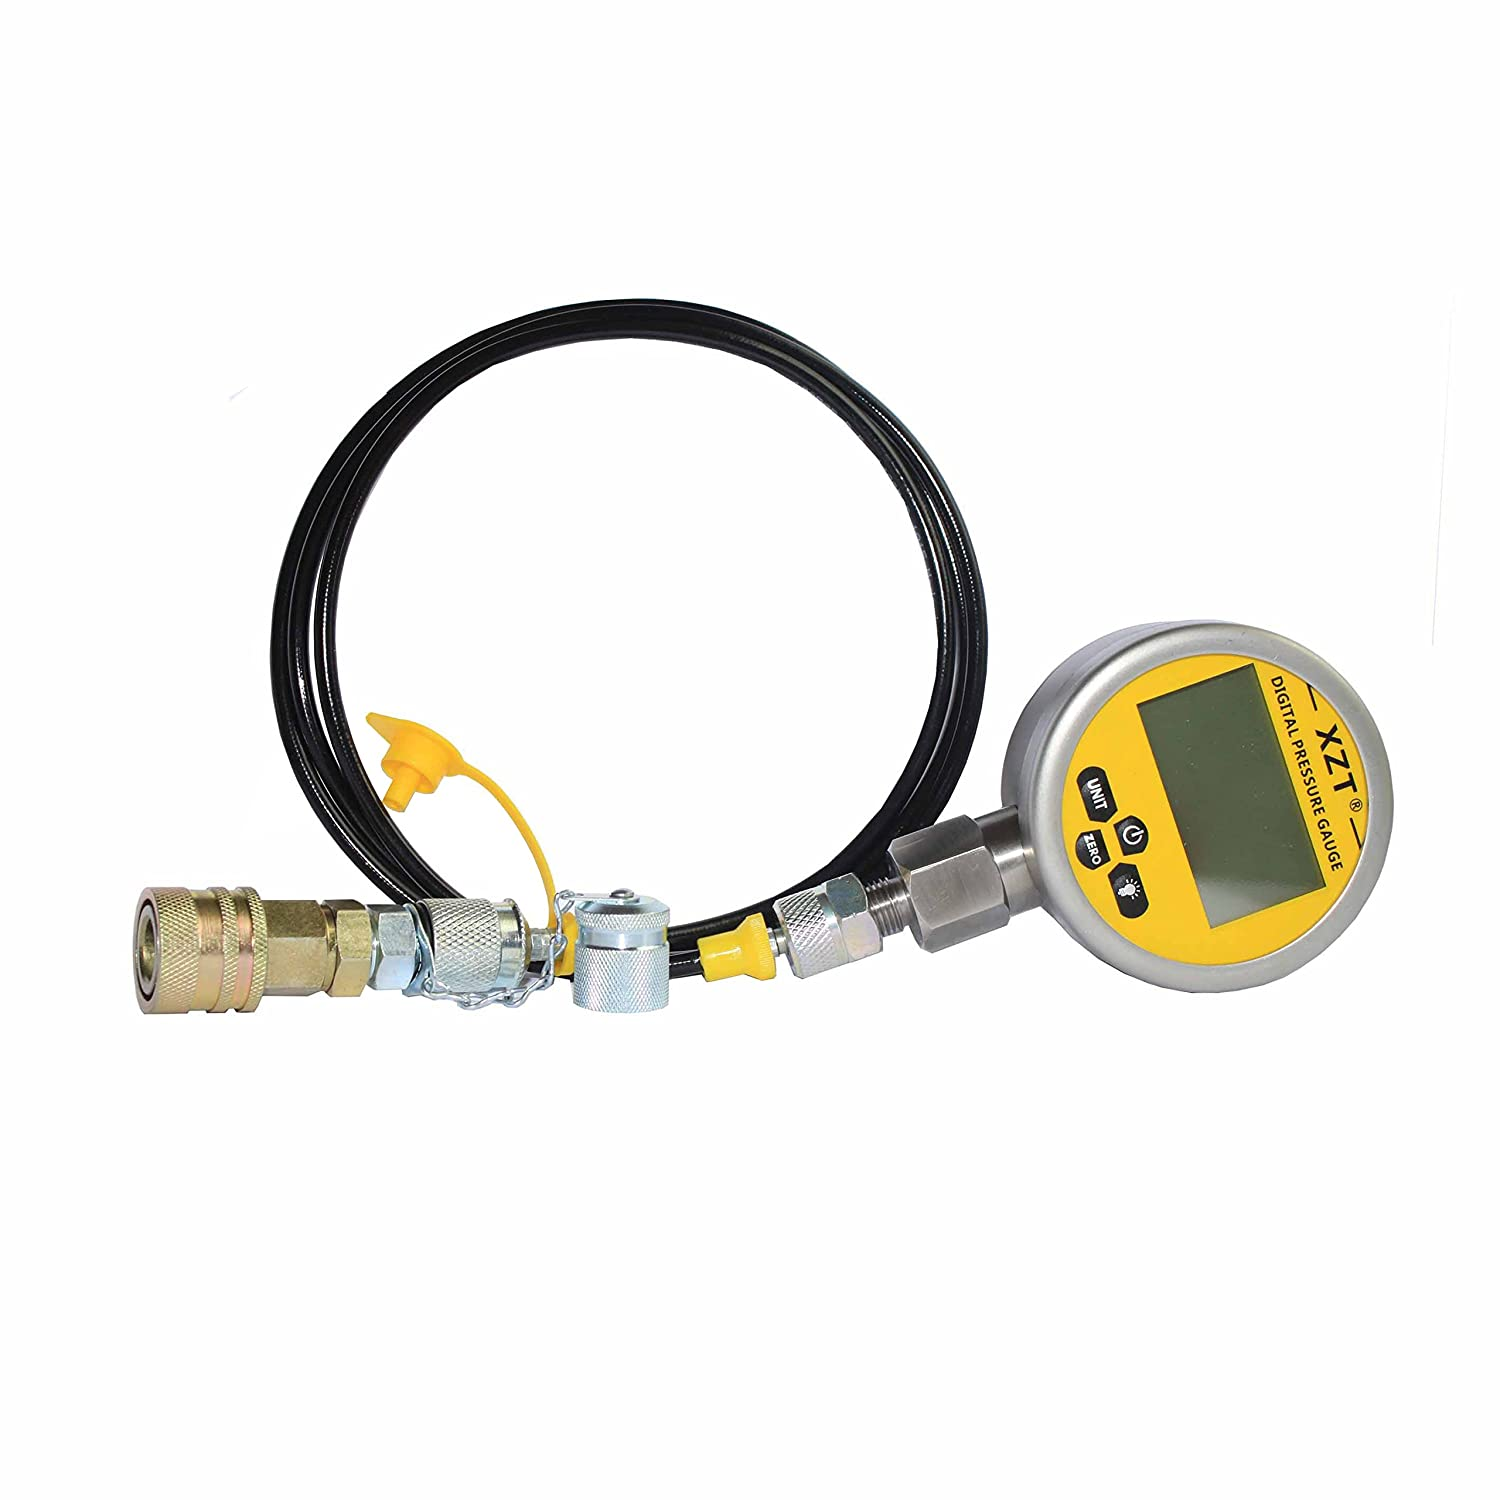 XZT Cat-10000PSI Digital Hydraulic Pressure Test Coupling Kit for Caterpillar Excavator (10000PSI)